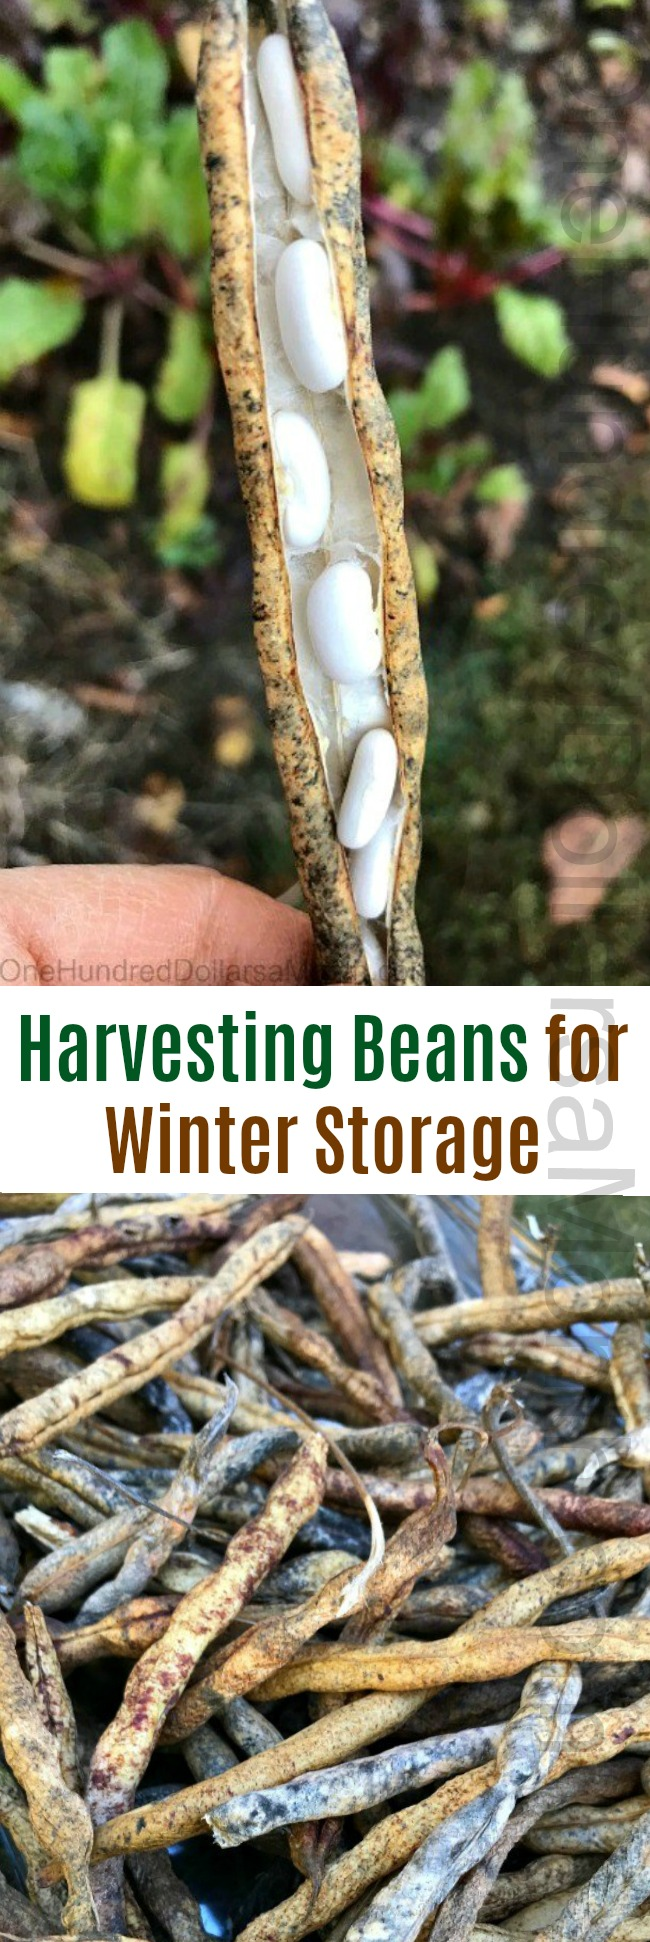 Harvesting Beans for Winter Storage